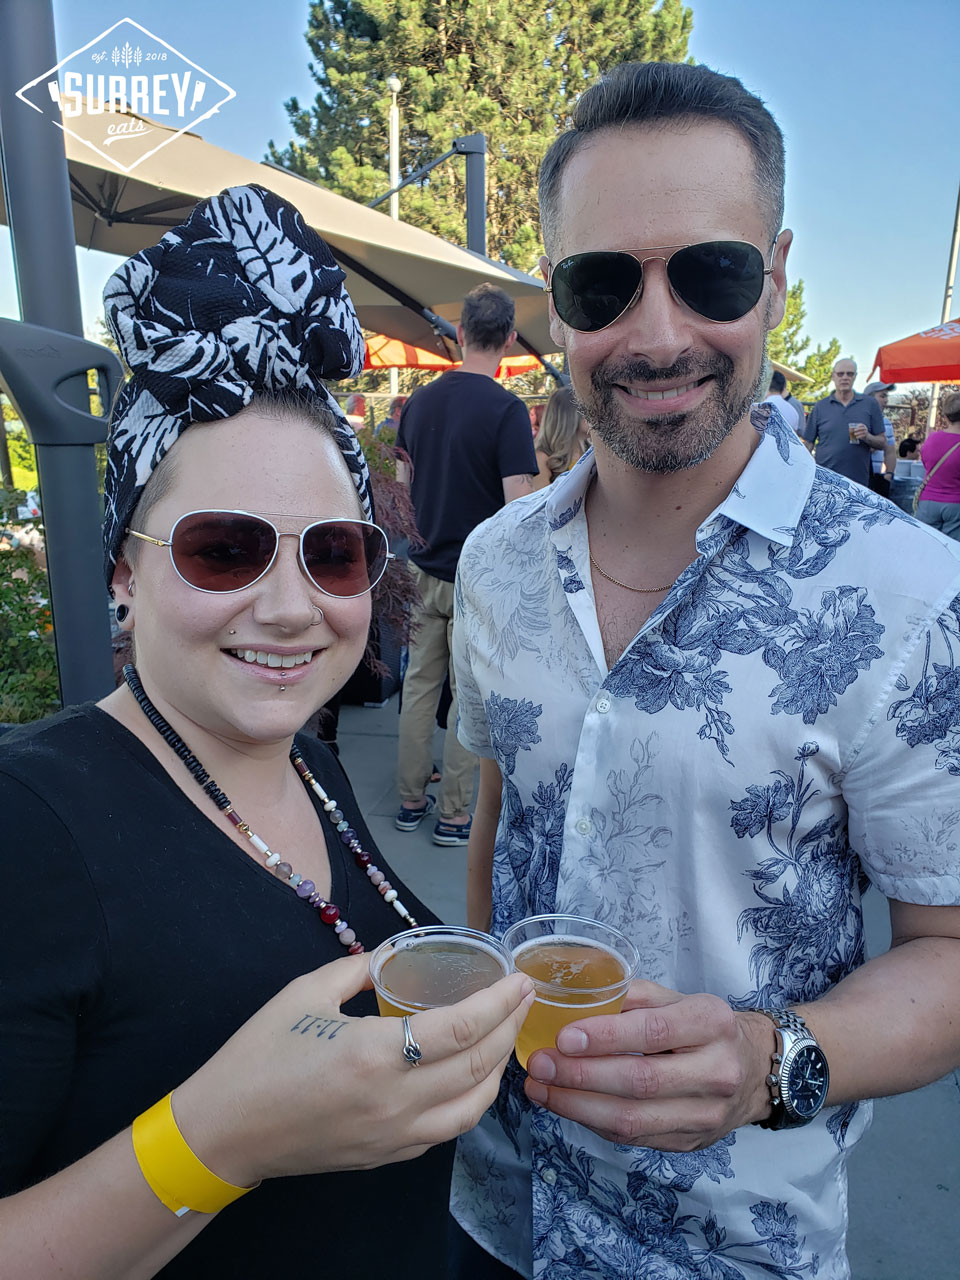 Surrey Eats writers Erin and Matt cheers while holding beer and wearing sunglasses